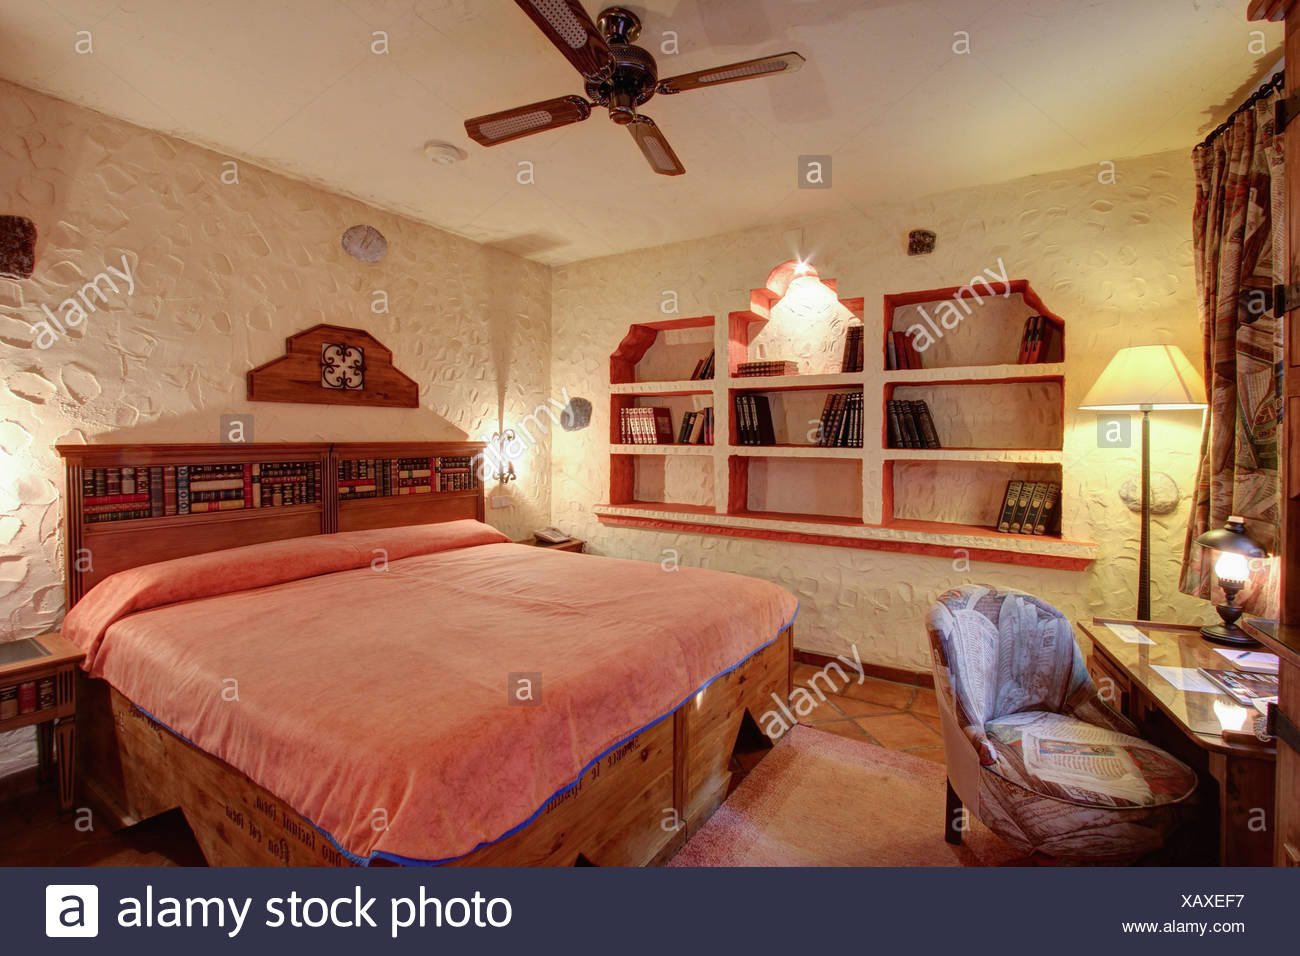 Wooden Bed With Pink Cover In Bedroom With Rough Plaster Walls And Alcove  Shelving In Villa In Southern Spain